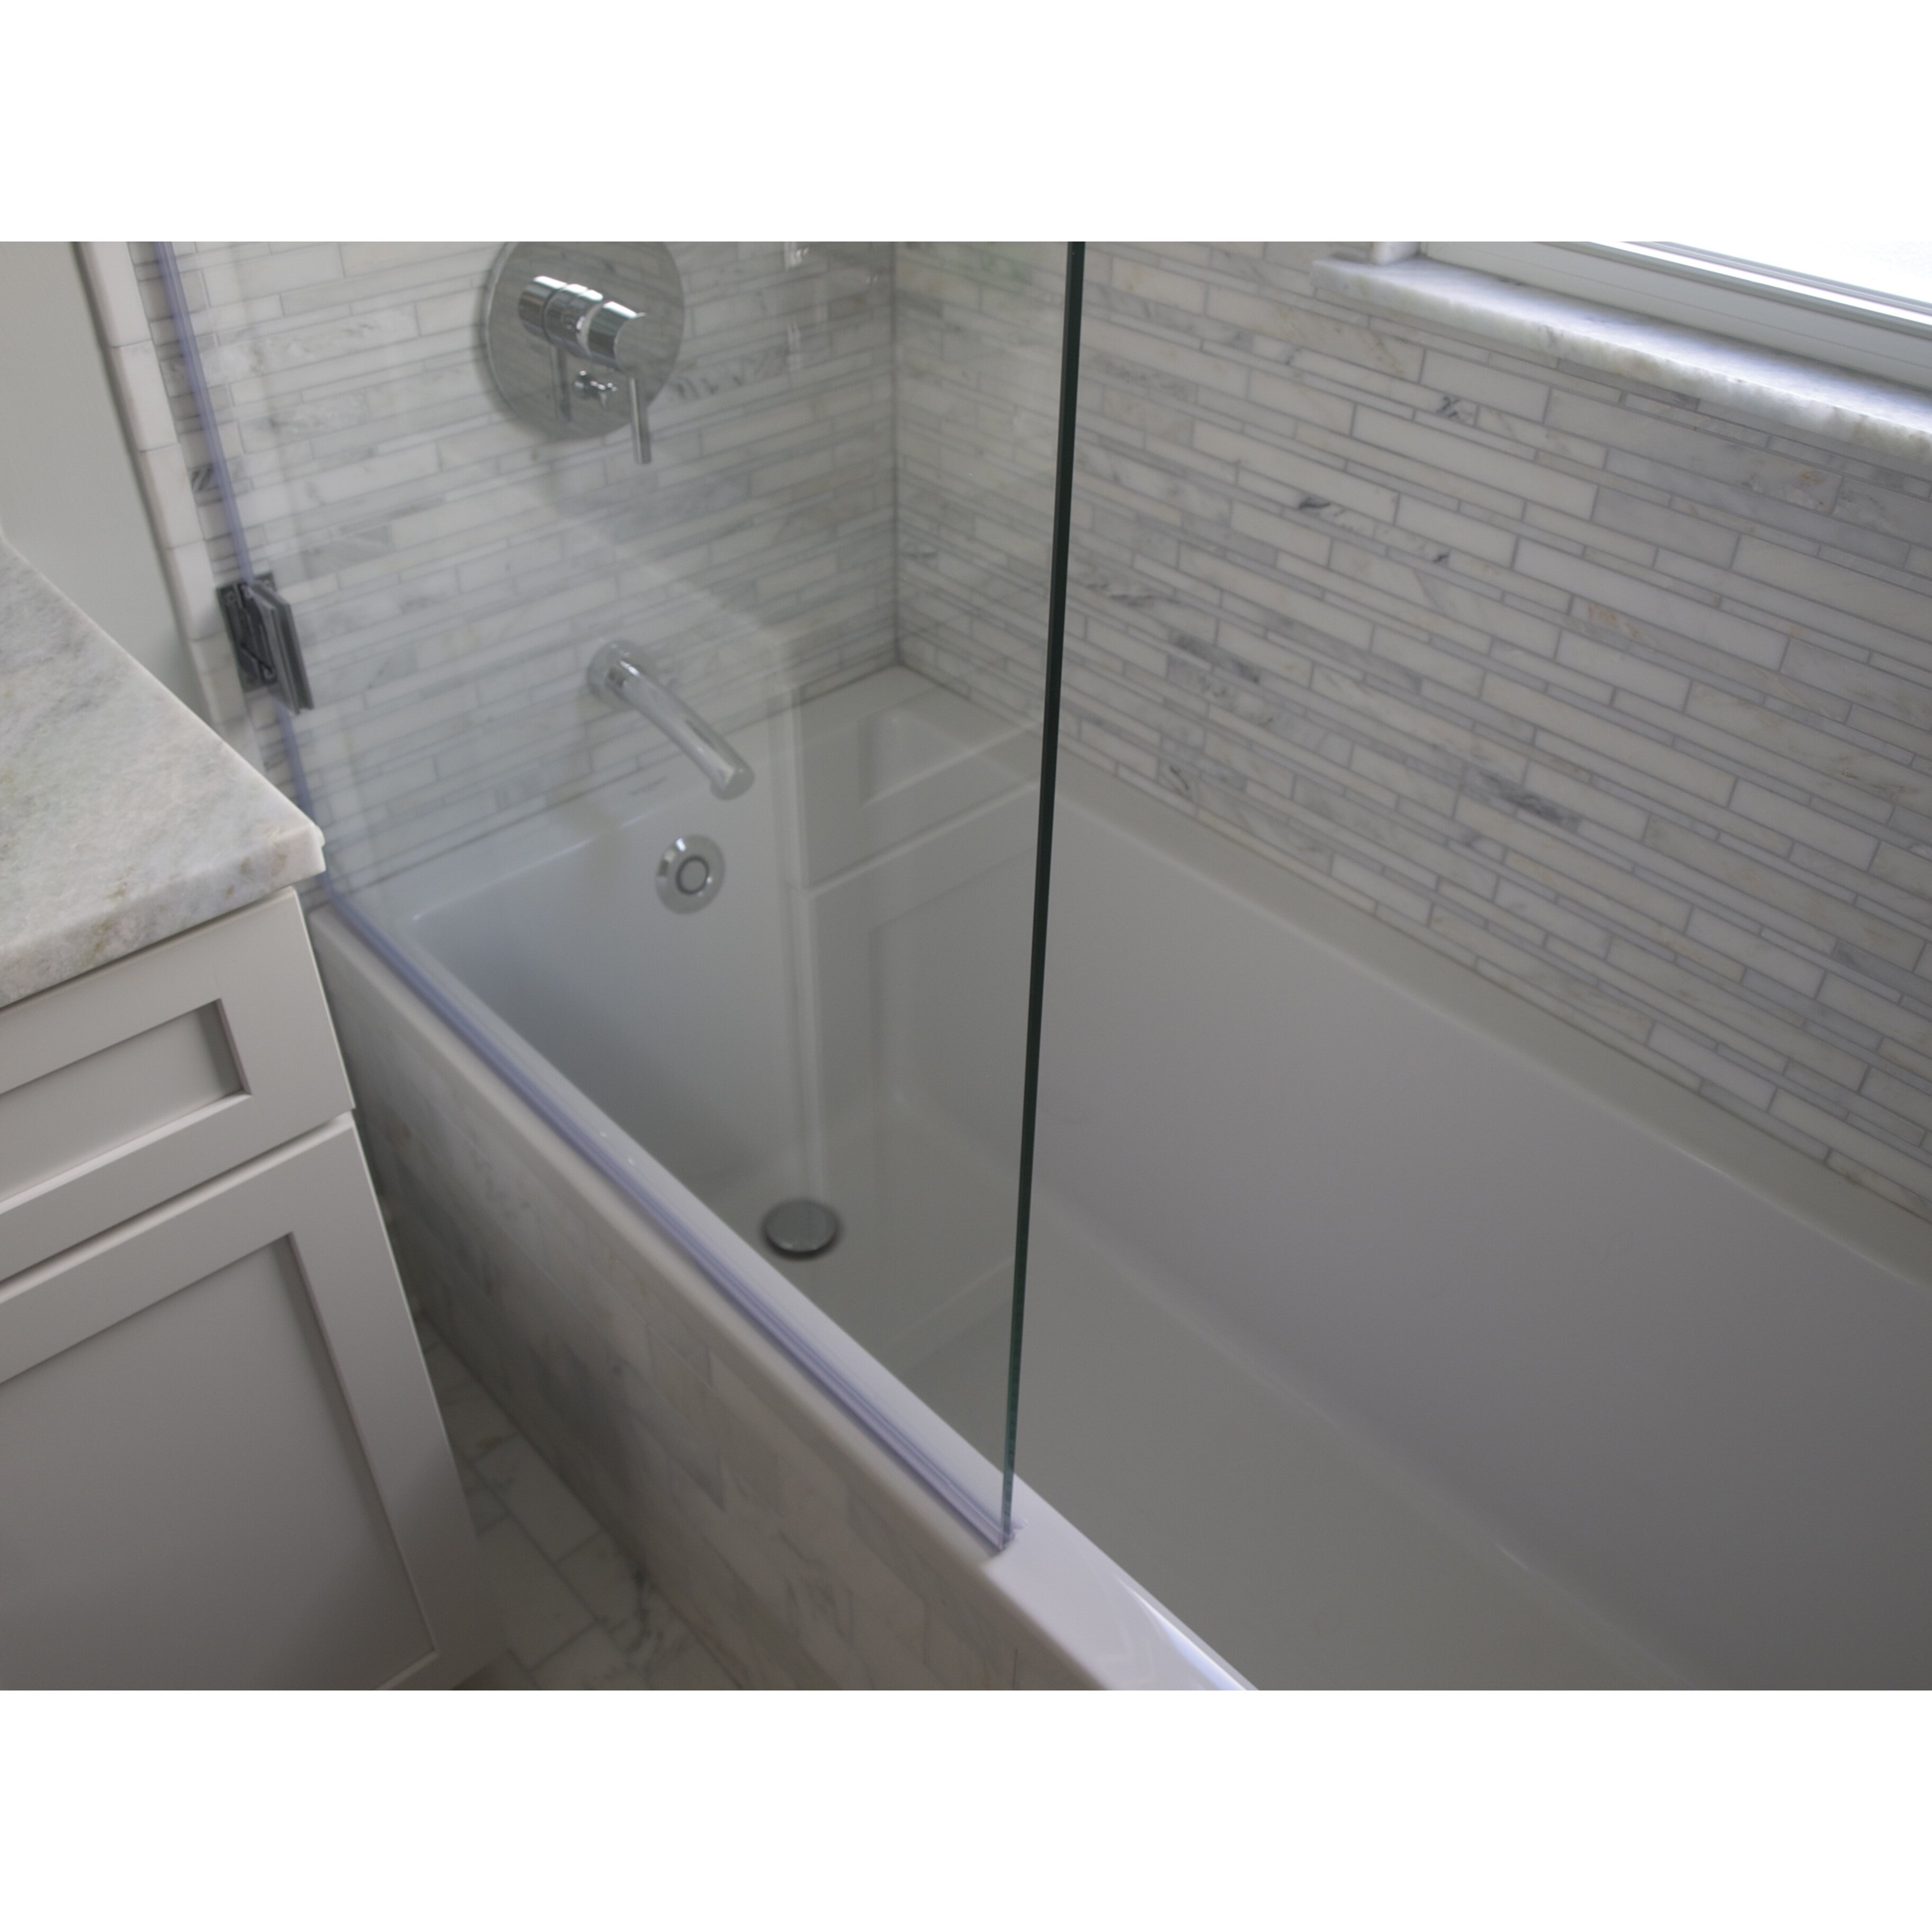 hinged bathtub shower screen with clearshield coating by ark showers